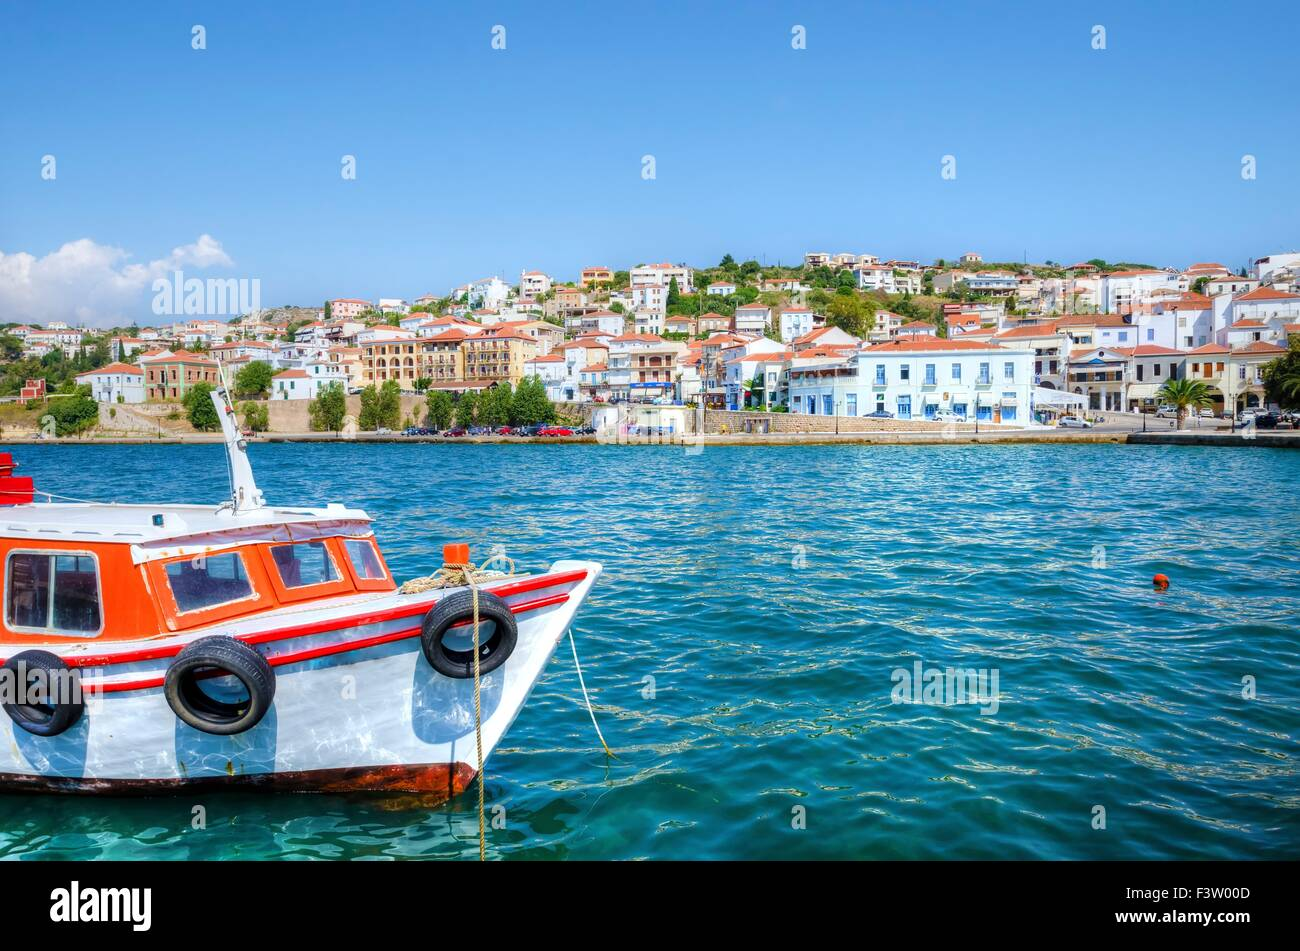 A view of a boat in the port of Pylos, a Greek city in Peloponnese (south Greece) and some local architecture in - Stock Image